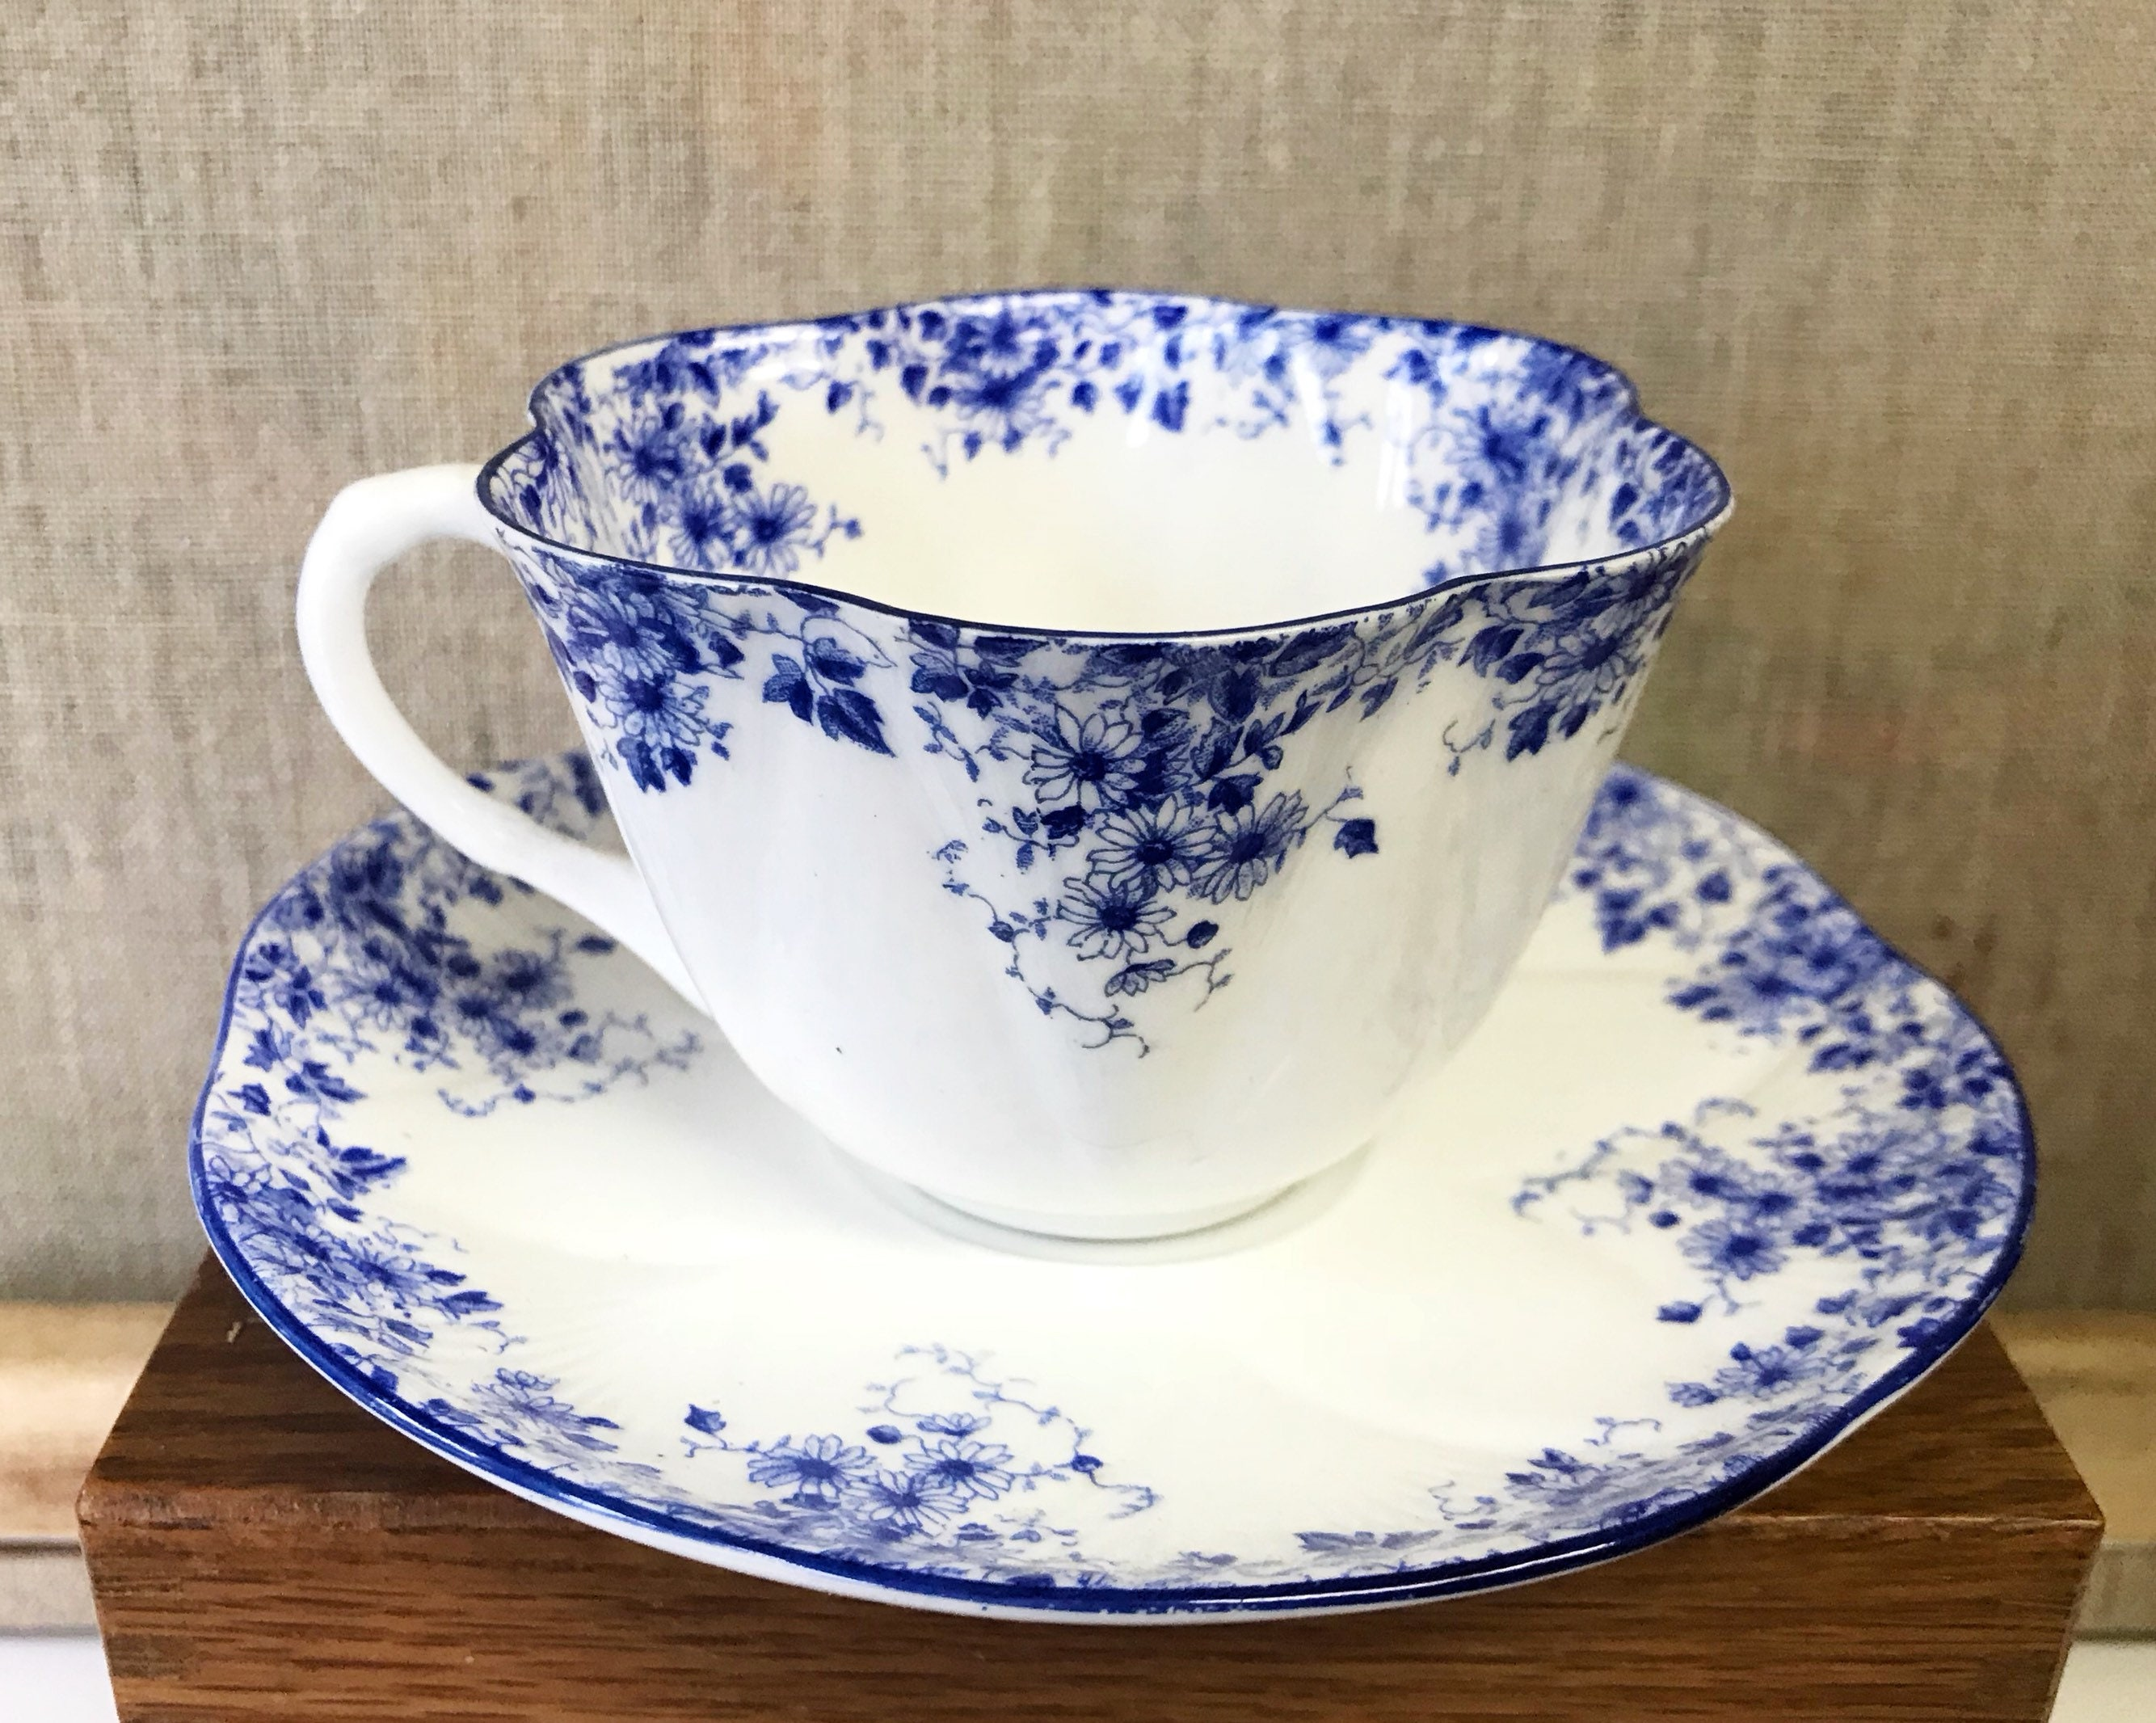 Vintage Shelley Dainty Blue Teacup and Saucer - Pretty Blue Floral